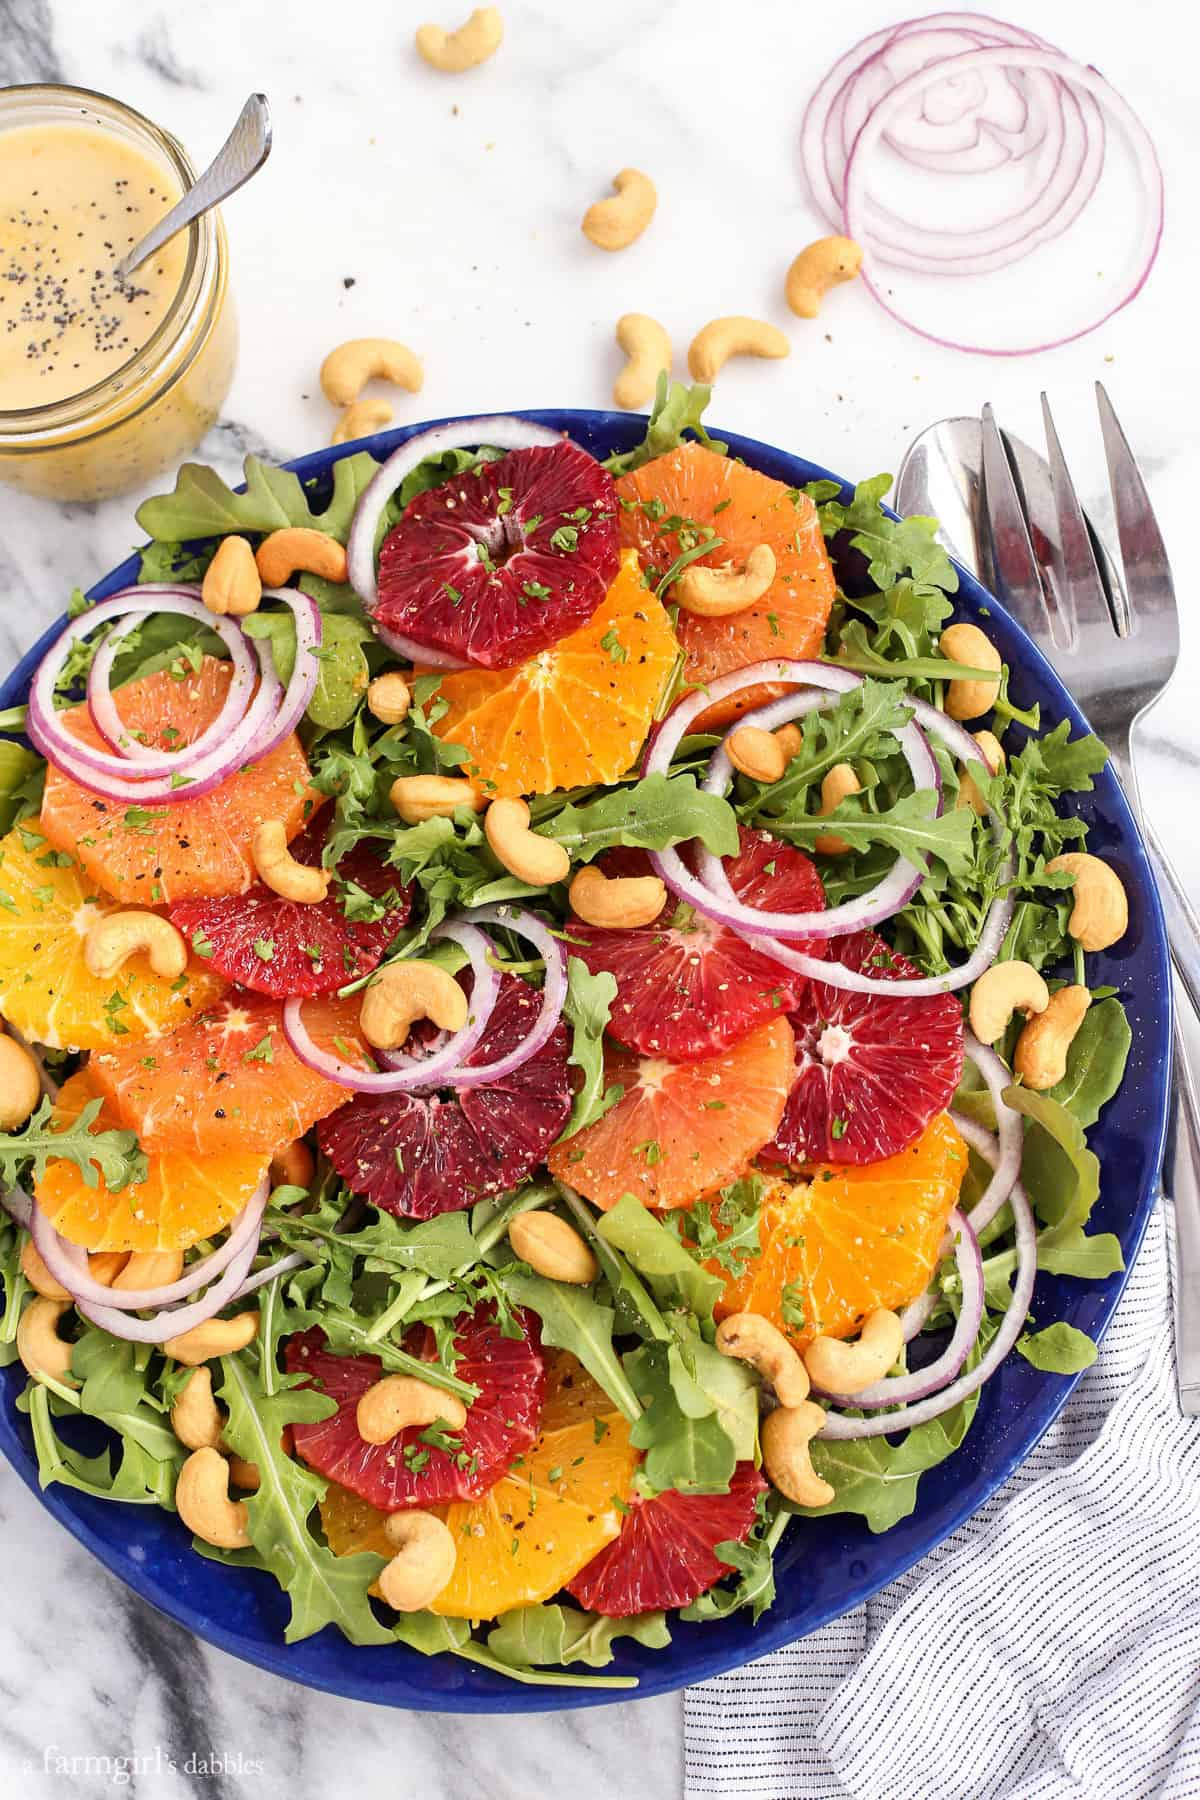 ... look at this Citrus Salad with Orange Poppy Seed Dressing, I feel joy